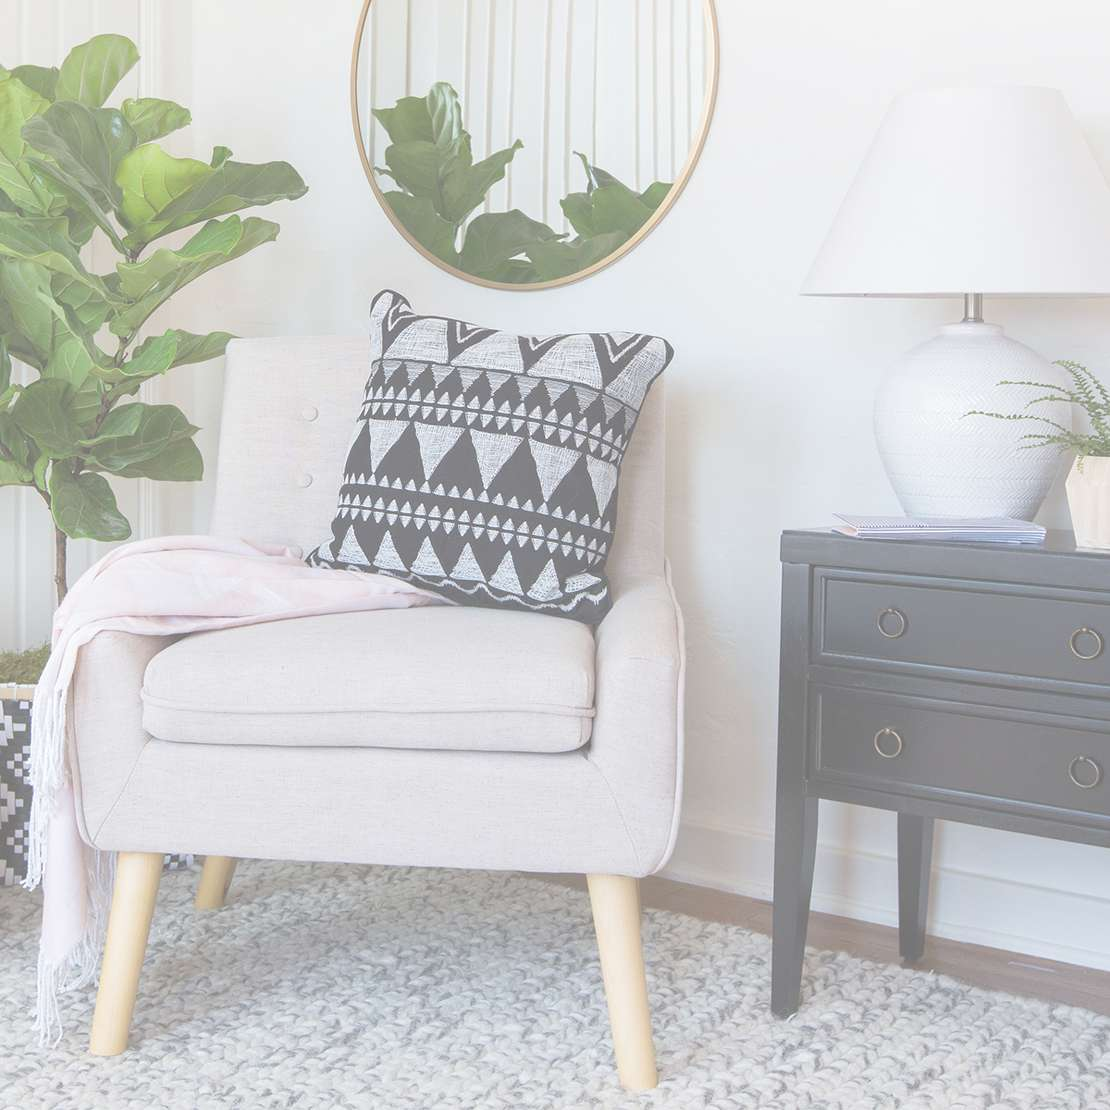 watch our video about Scandinavian style